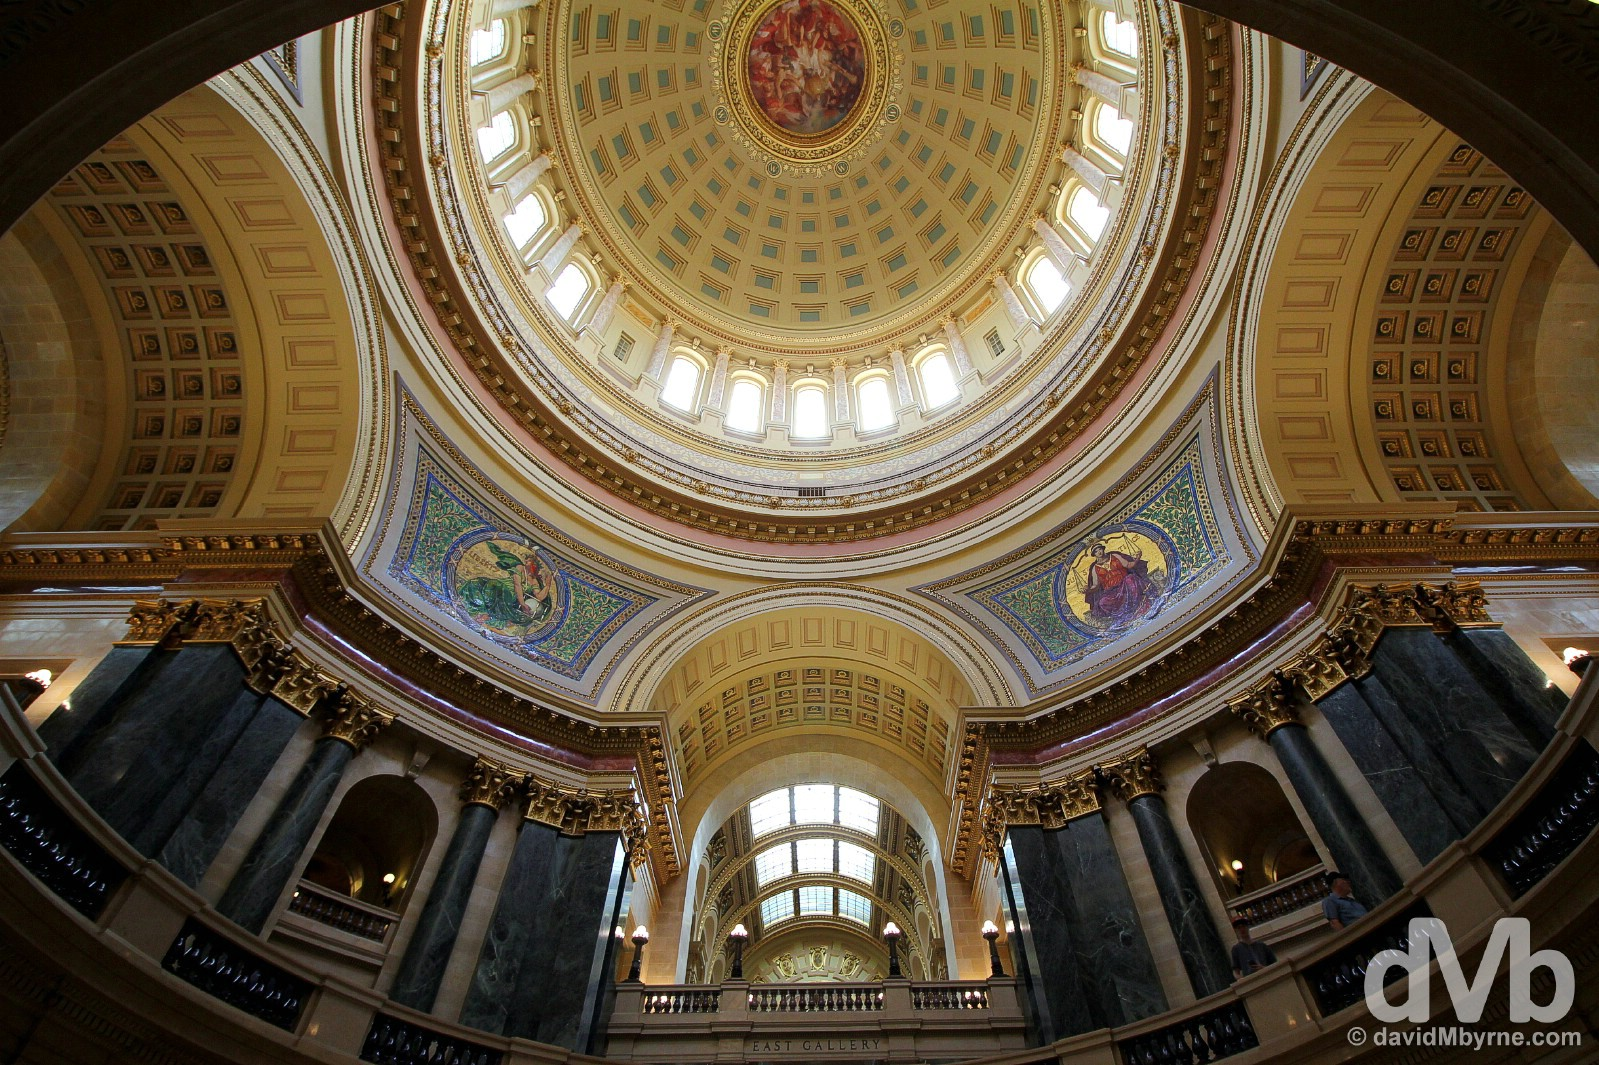 Cupola of the State Capitol Building in Madison, Wisconsin, USA. August 29, 2016.